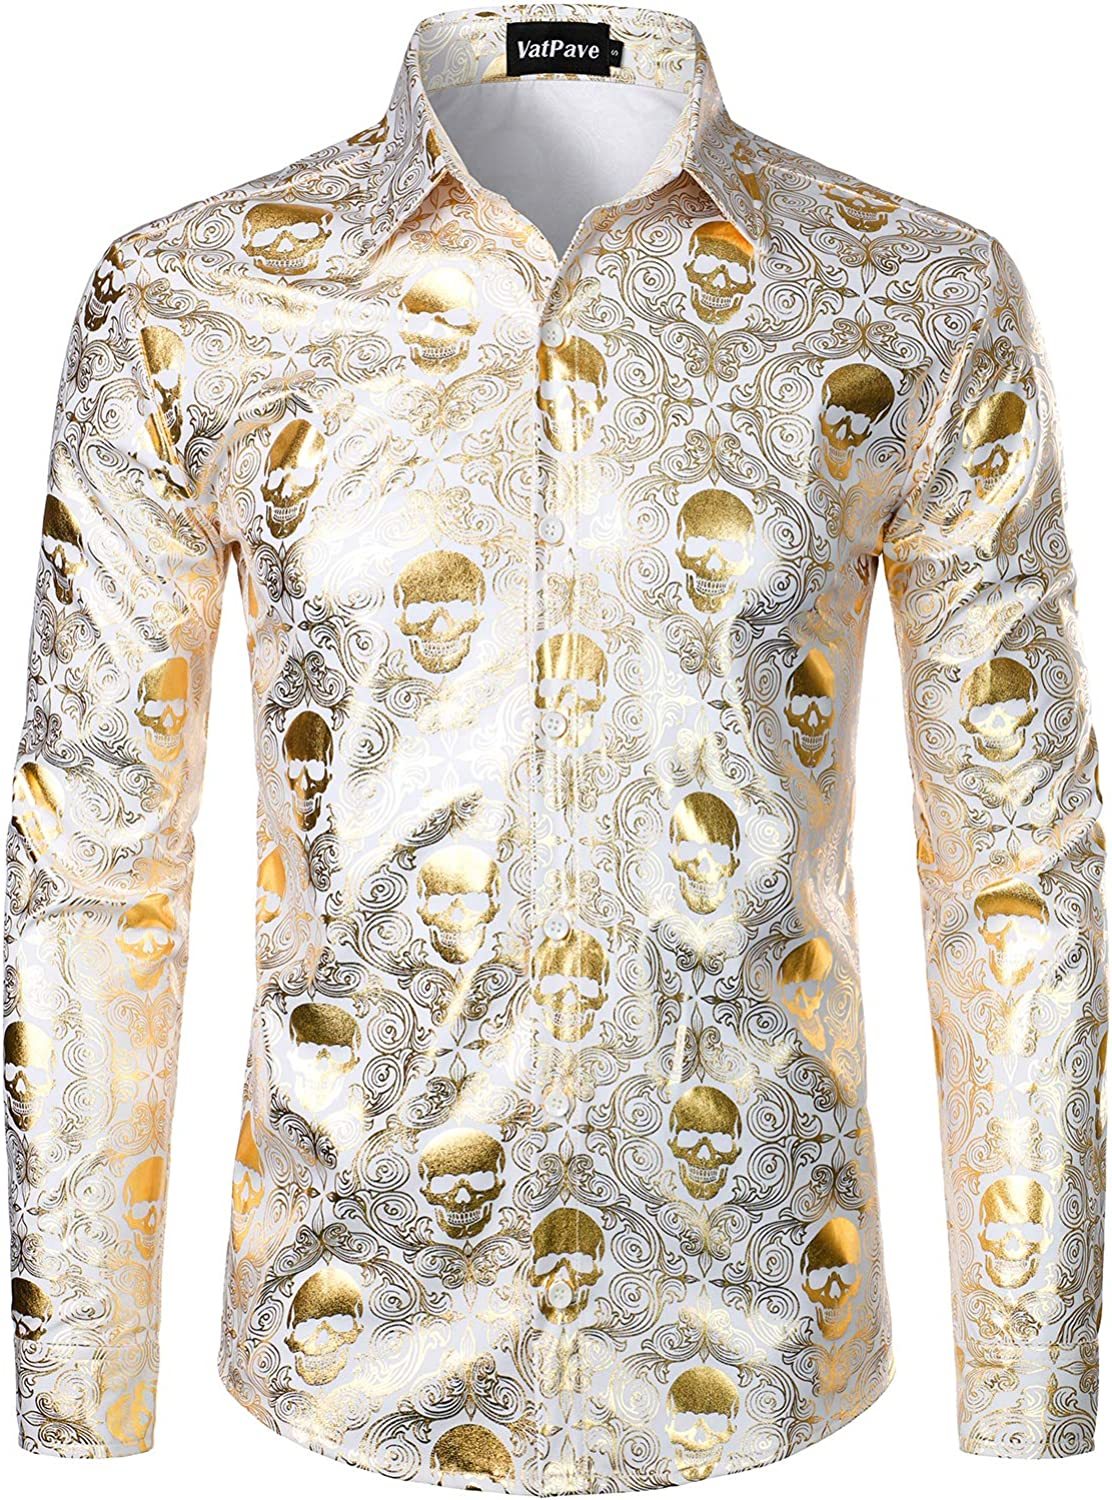 VATPAVE Mens Luxury Design Skull Dress Shirts Regular Fit Button Down Paisly Shirts Long Sleeve Prom Shirts